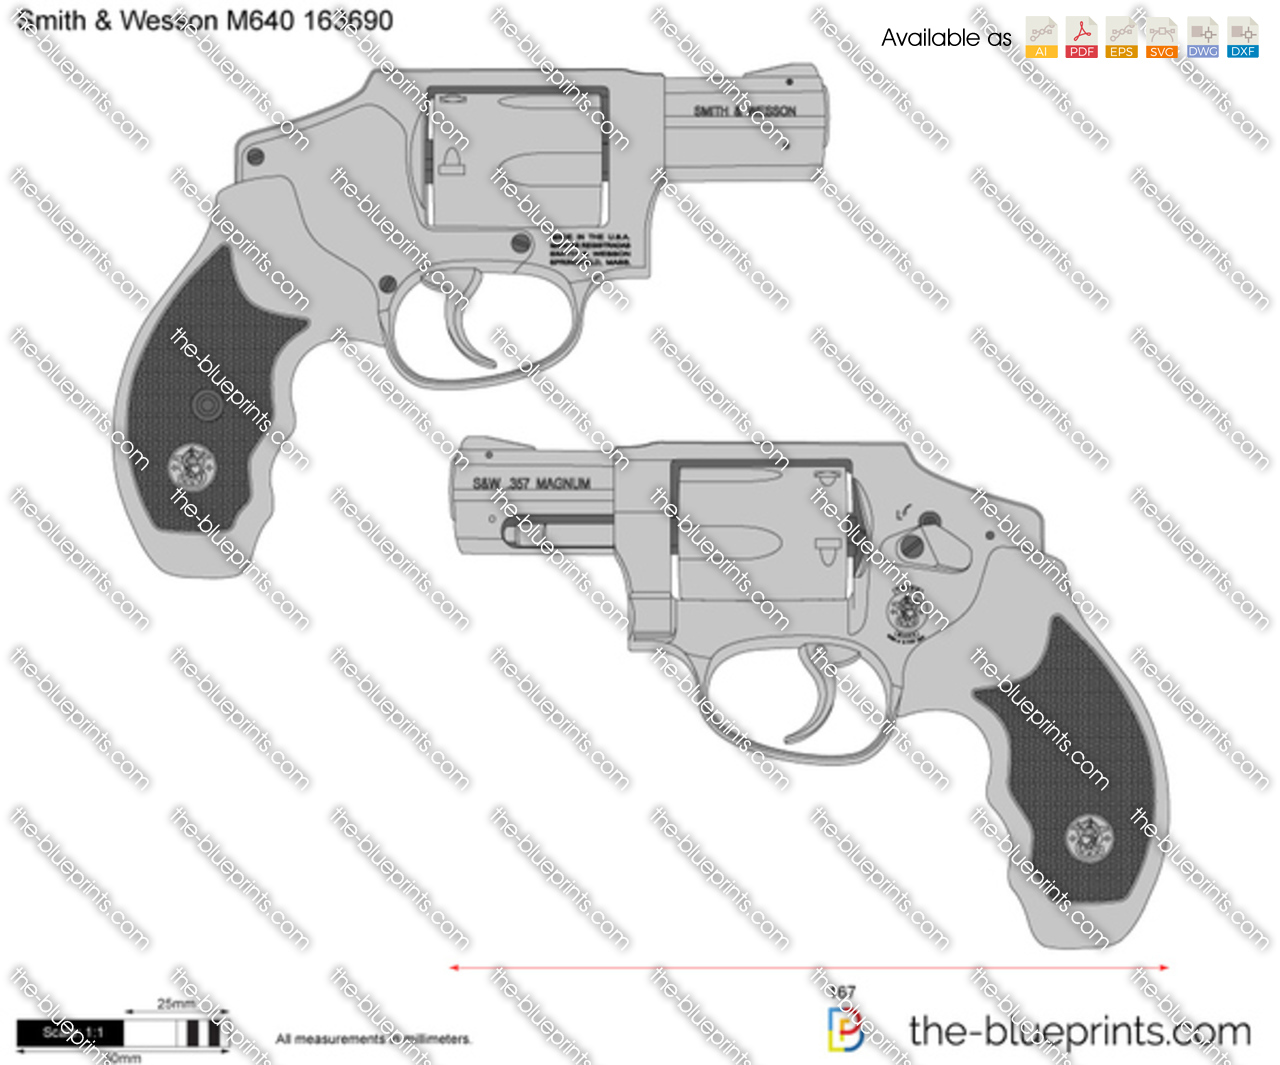 Smith & Wesson M640 163690